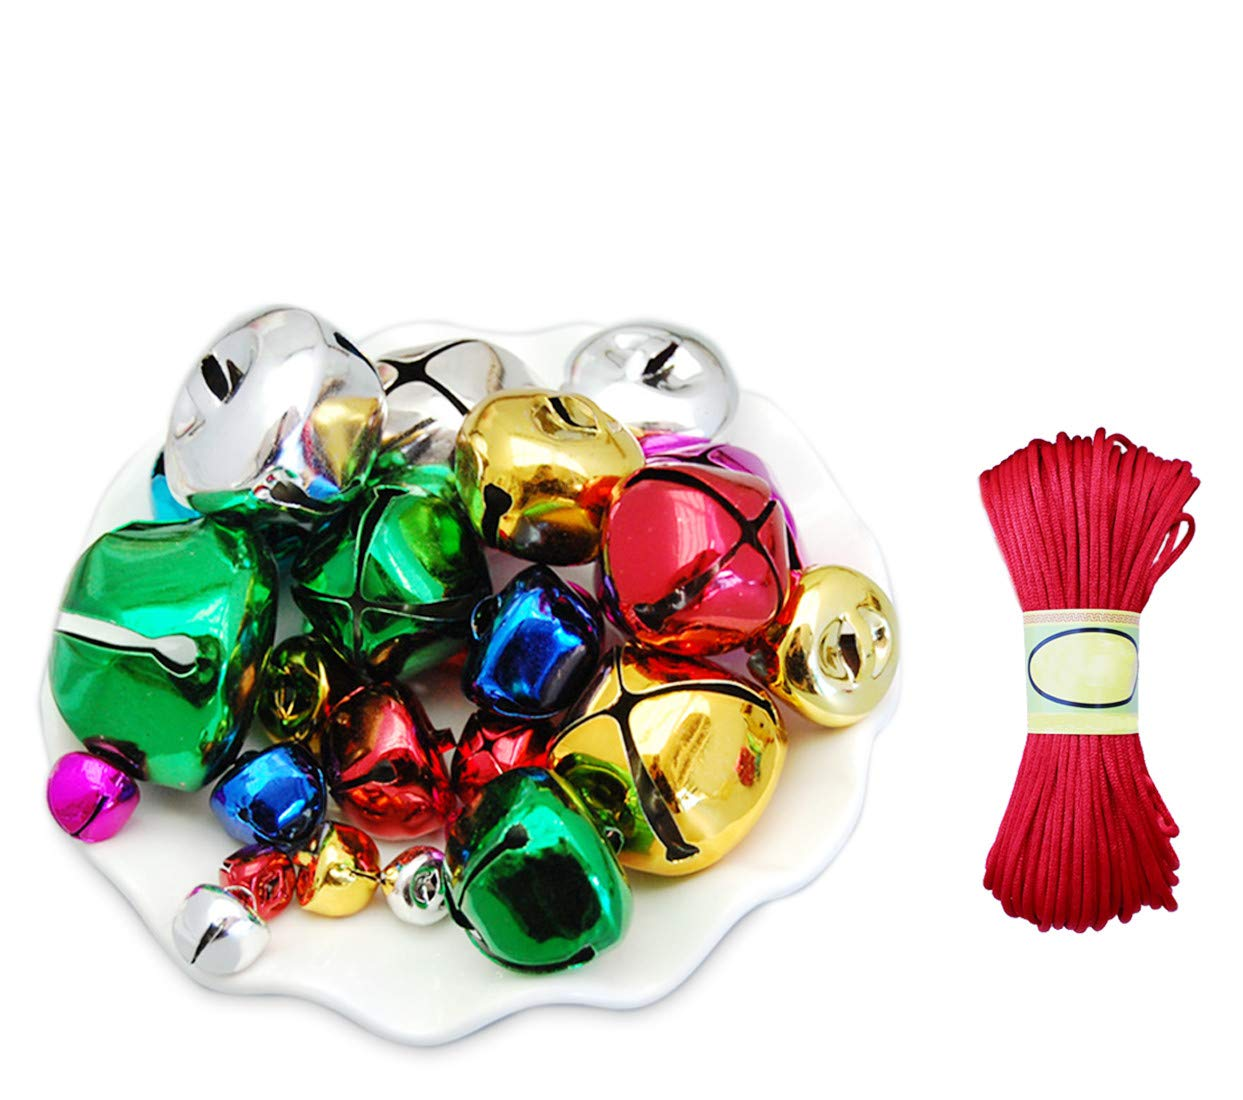 NinkyNonk Jingle Bells Metal Christmas Bells Craft Bells Decoration DIY Jewelry Making, 25mm, 20mm, 15mm, 10mm, 100pcs